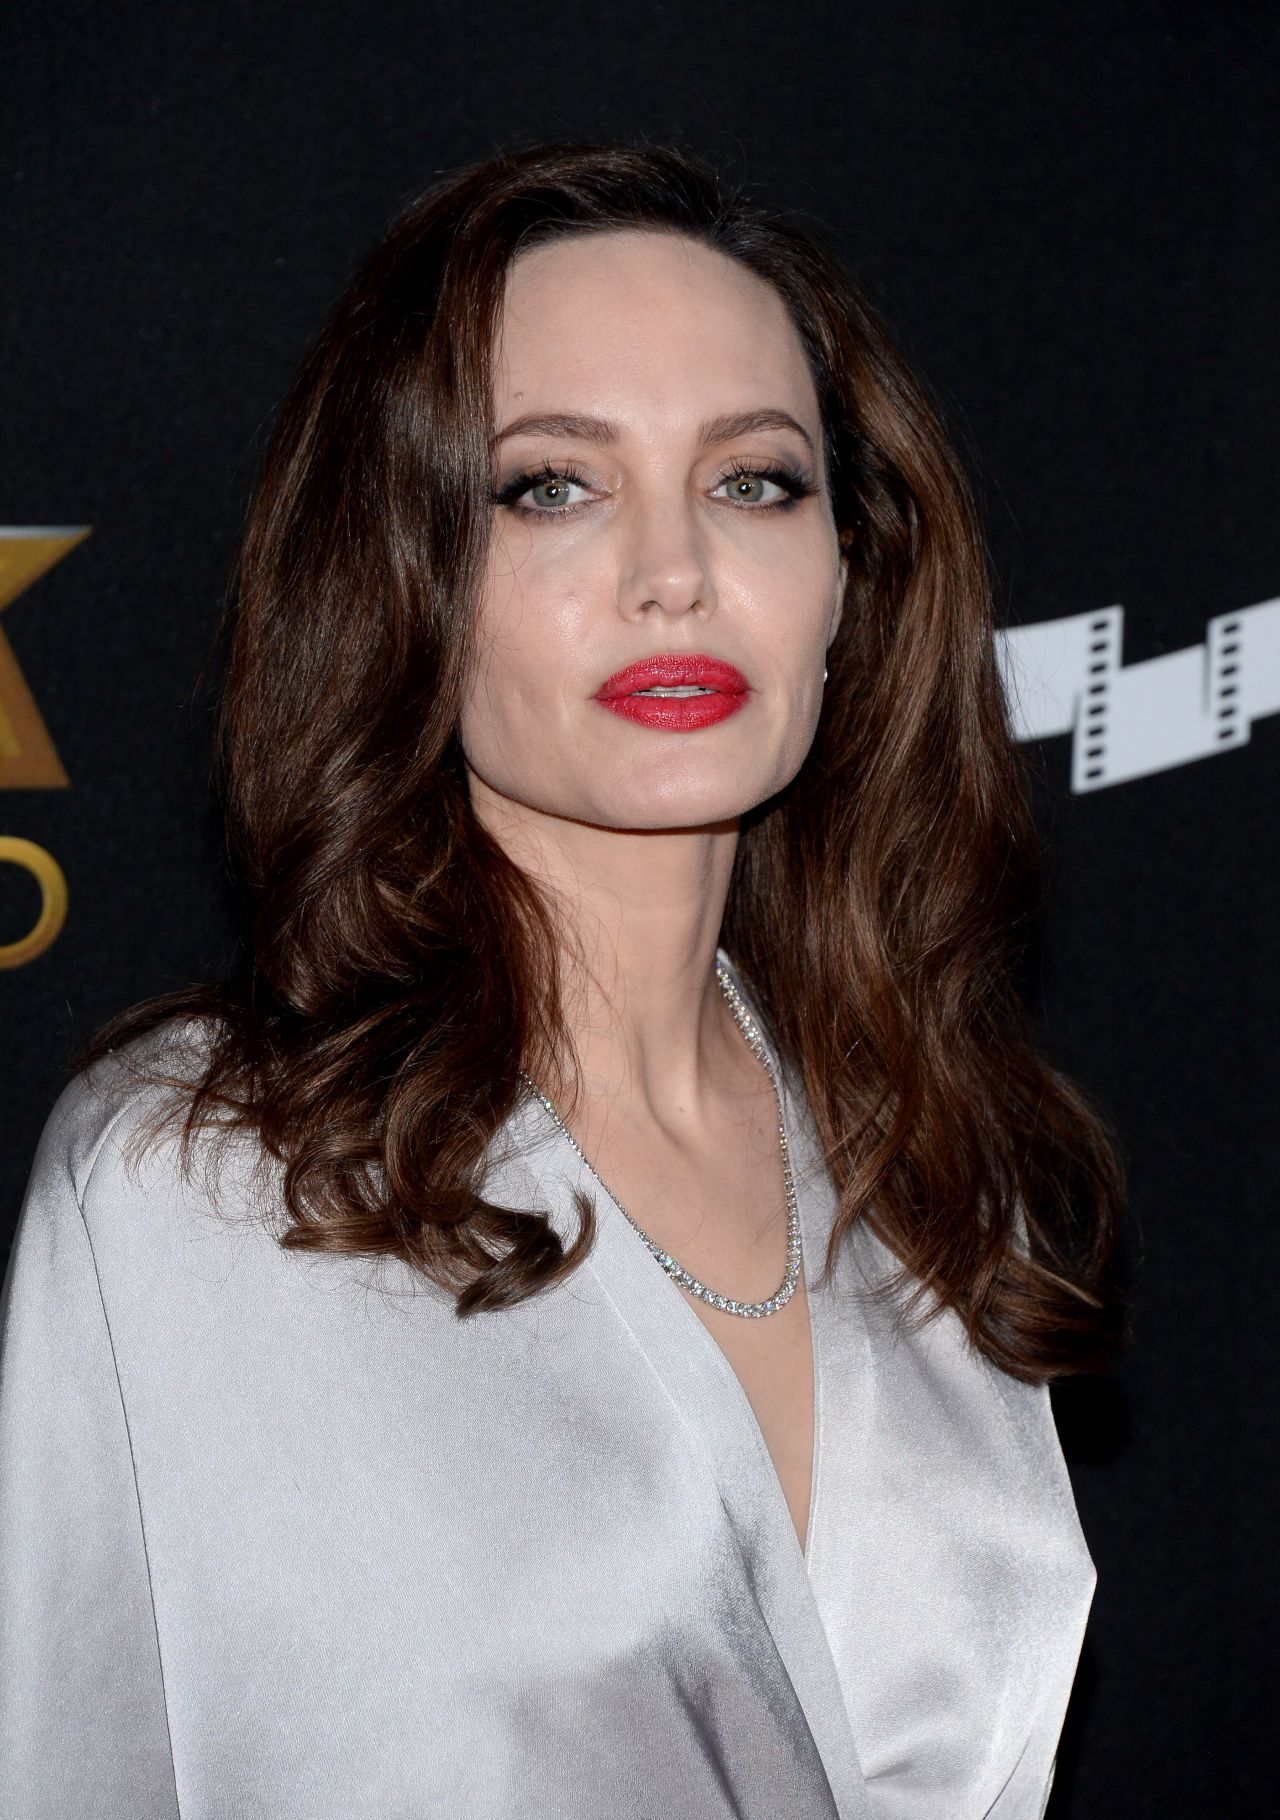 Angelina Jolie Hollywood Film Awards 2017 In Los Angeles